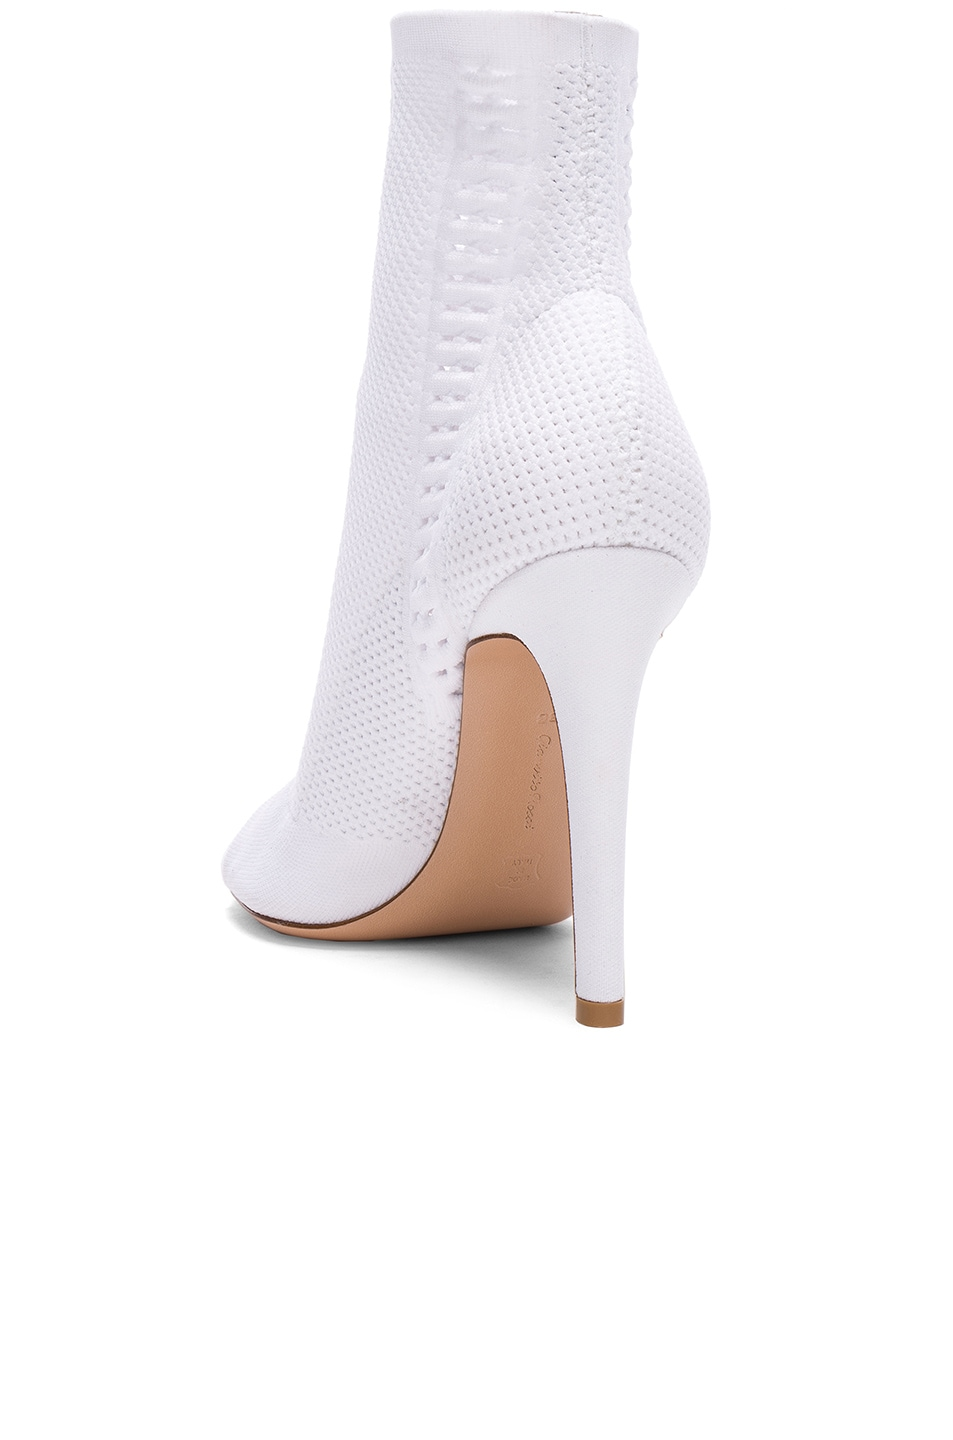 Image 3 of Gianvito Rossi Knit Vires Booties in White